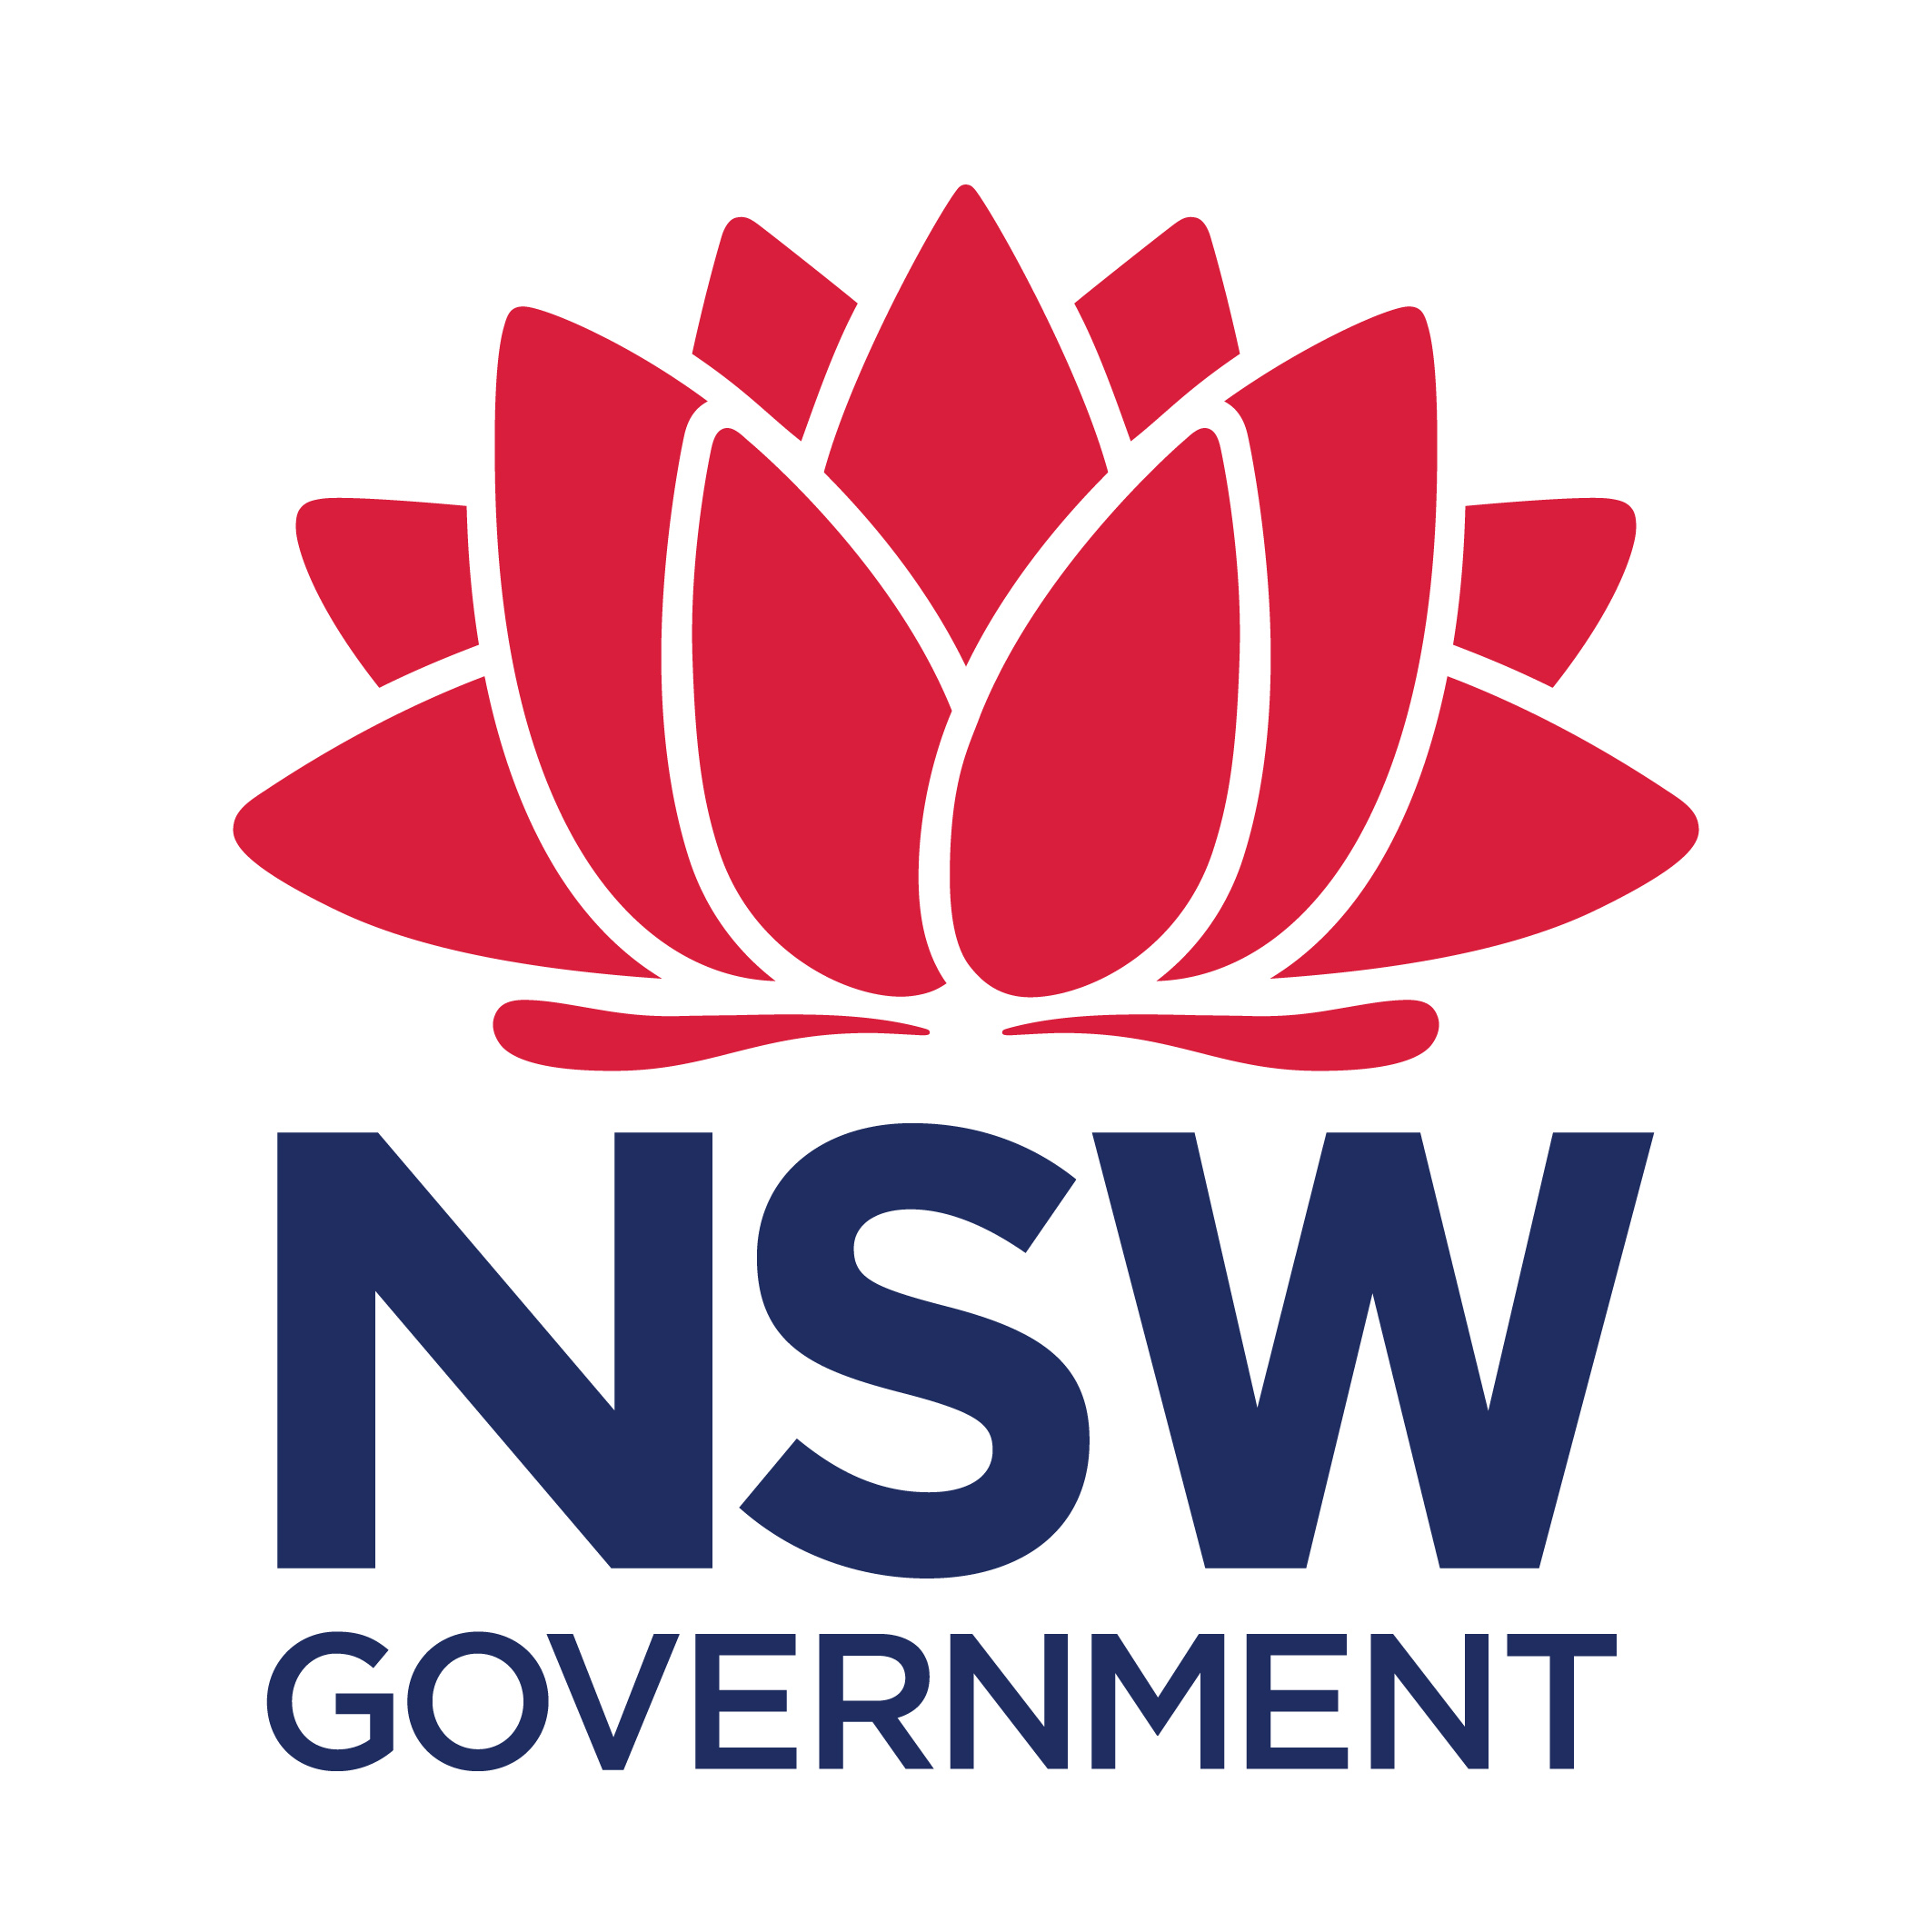 The Justice NSW Podcast